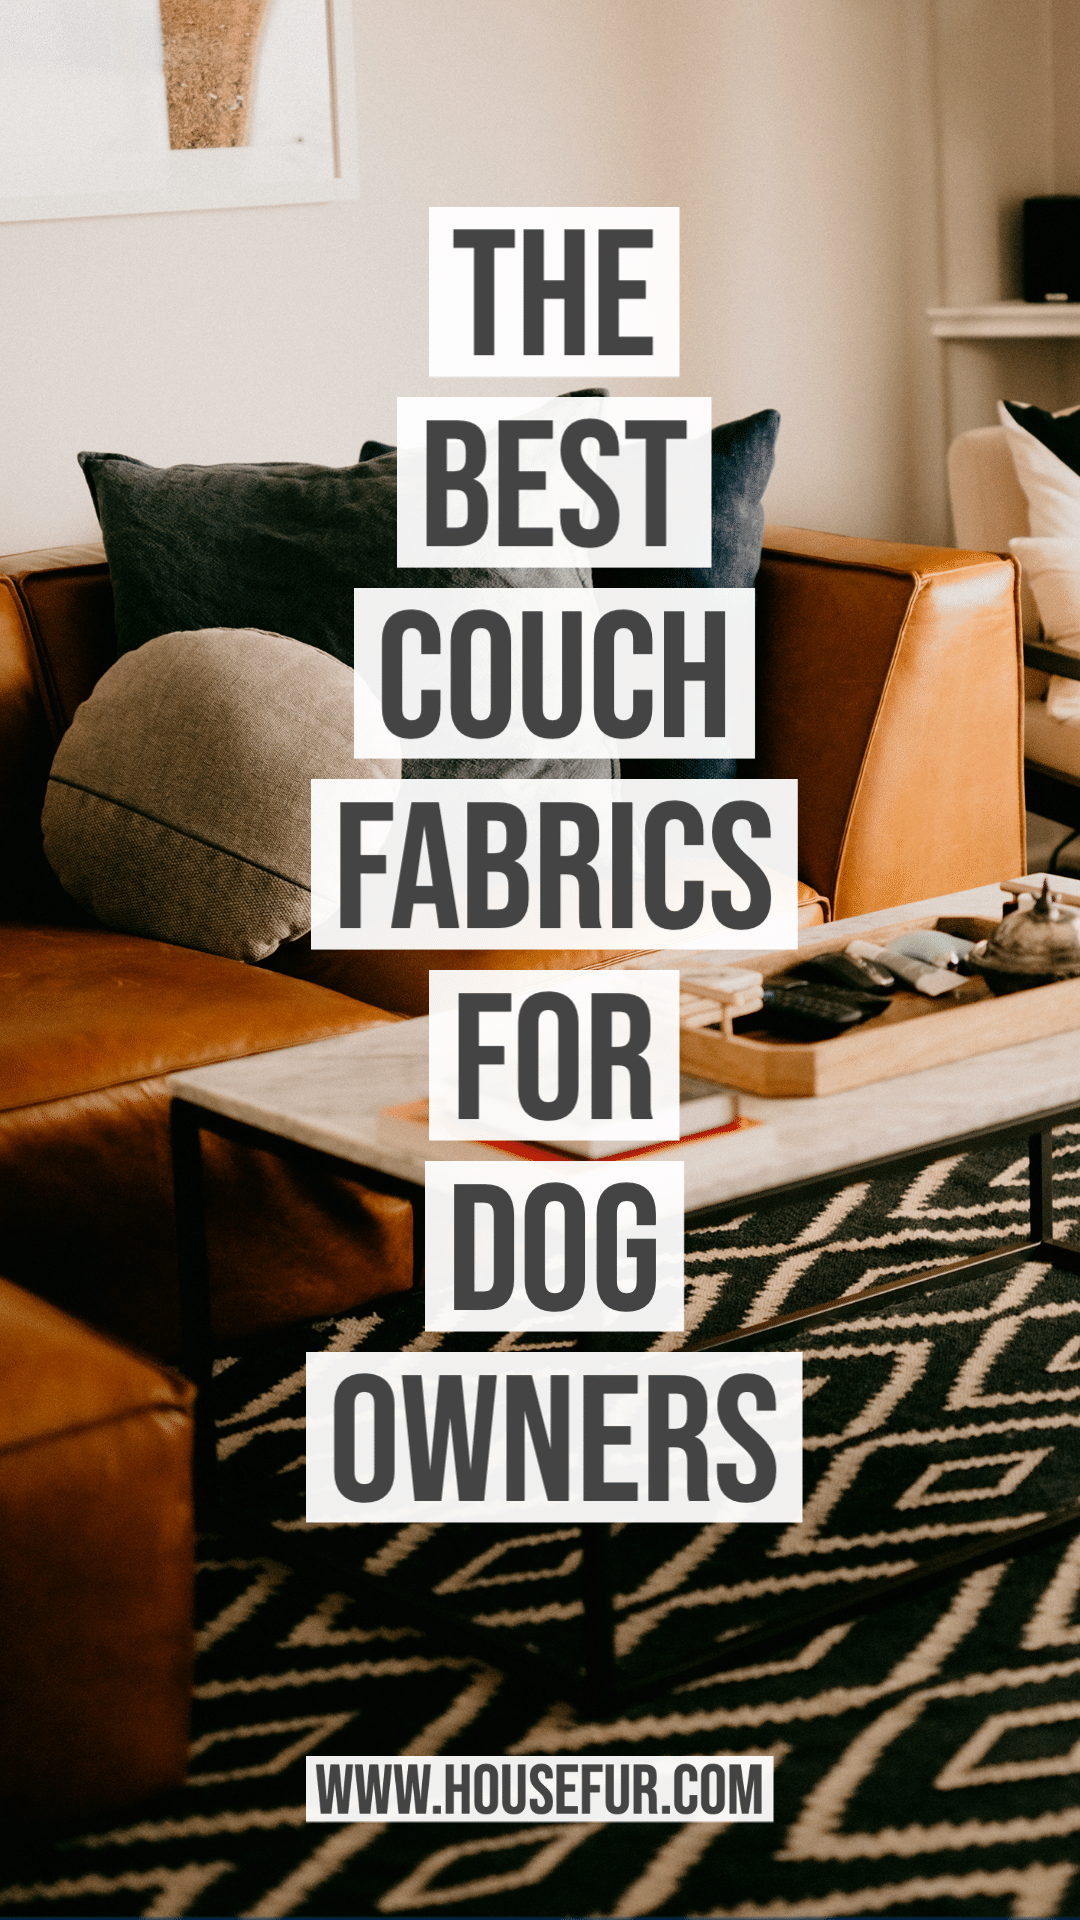 The Best Sofa Fabrics For Dog Owners In 2020 Cool Couches